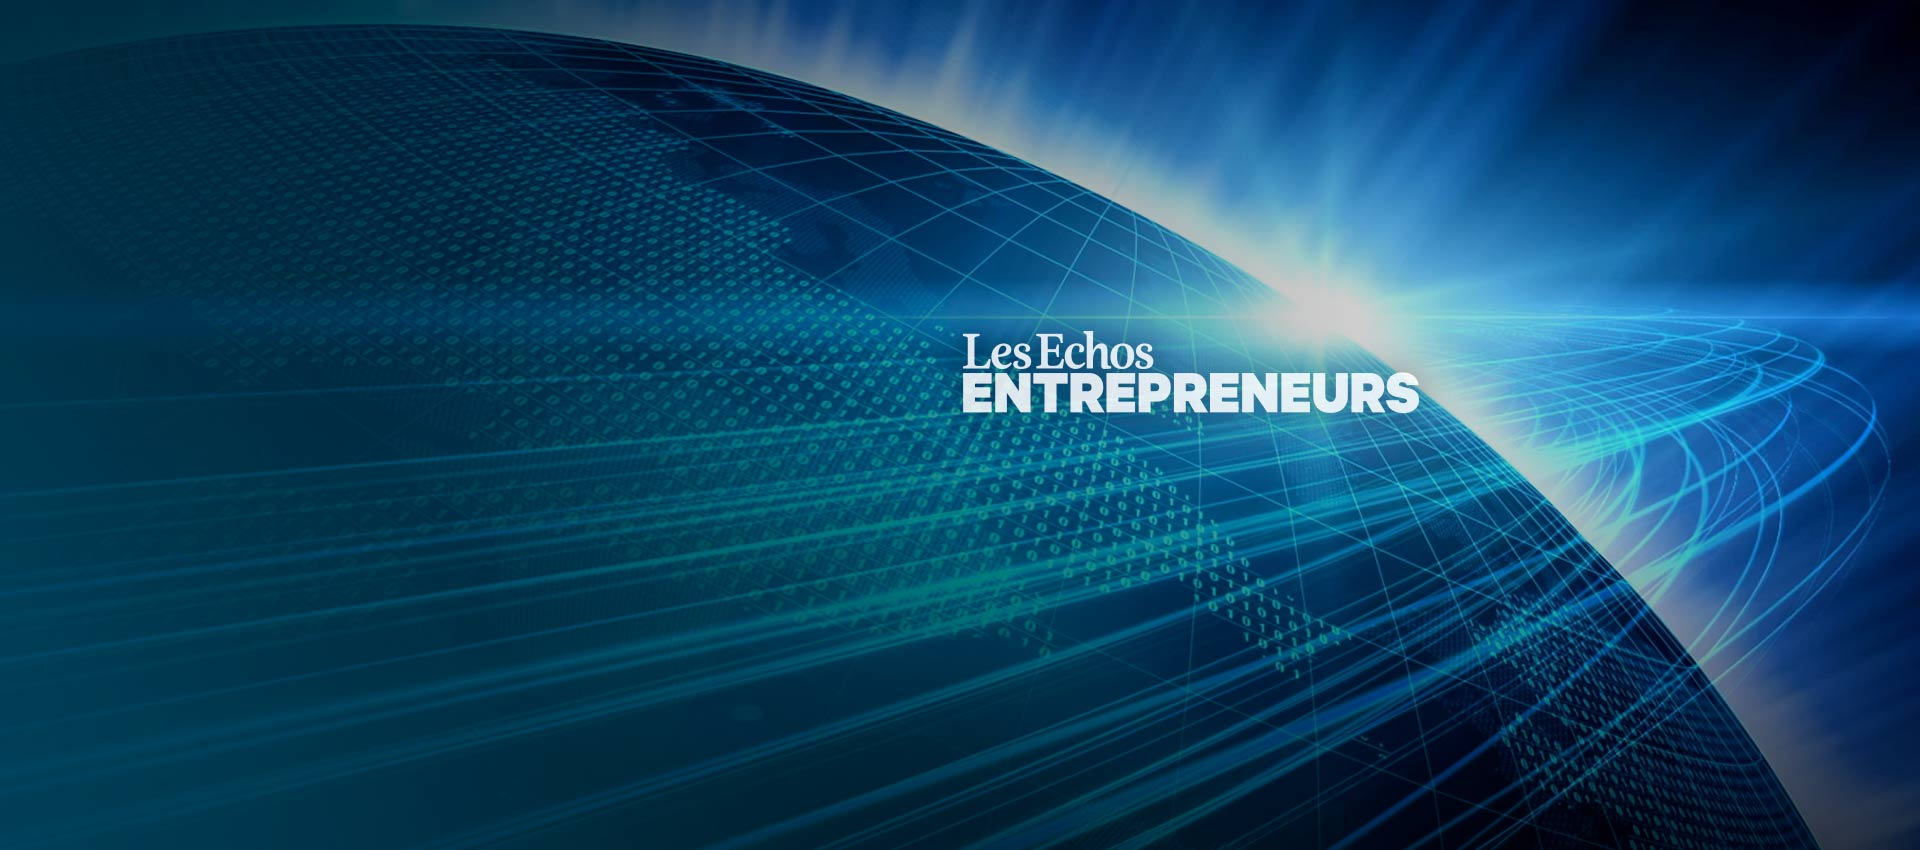 newsroom-background-les-echoes